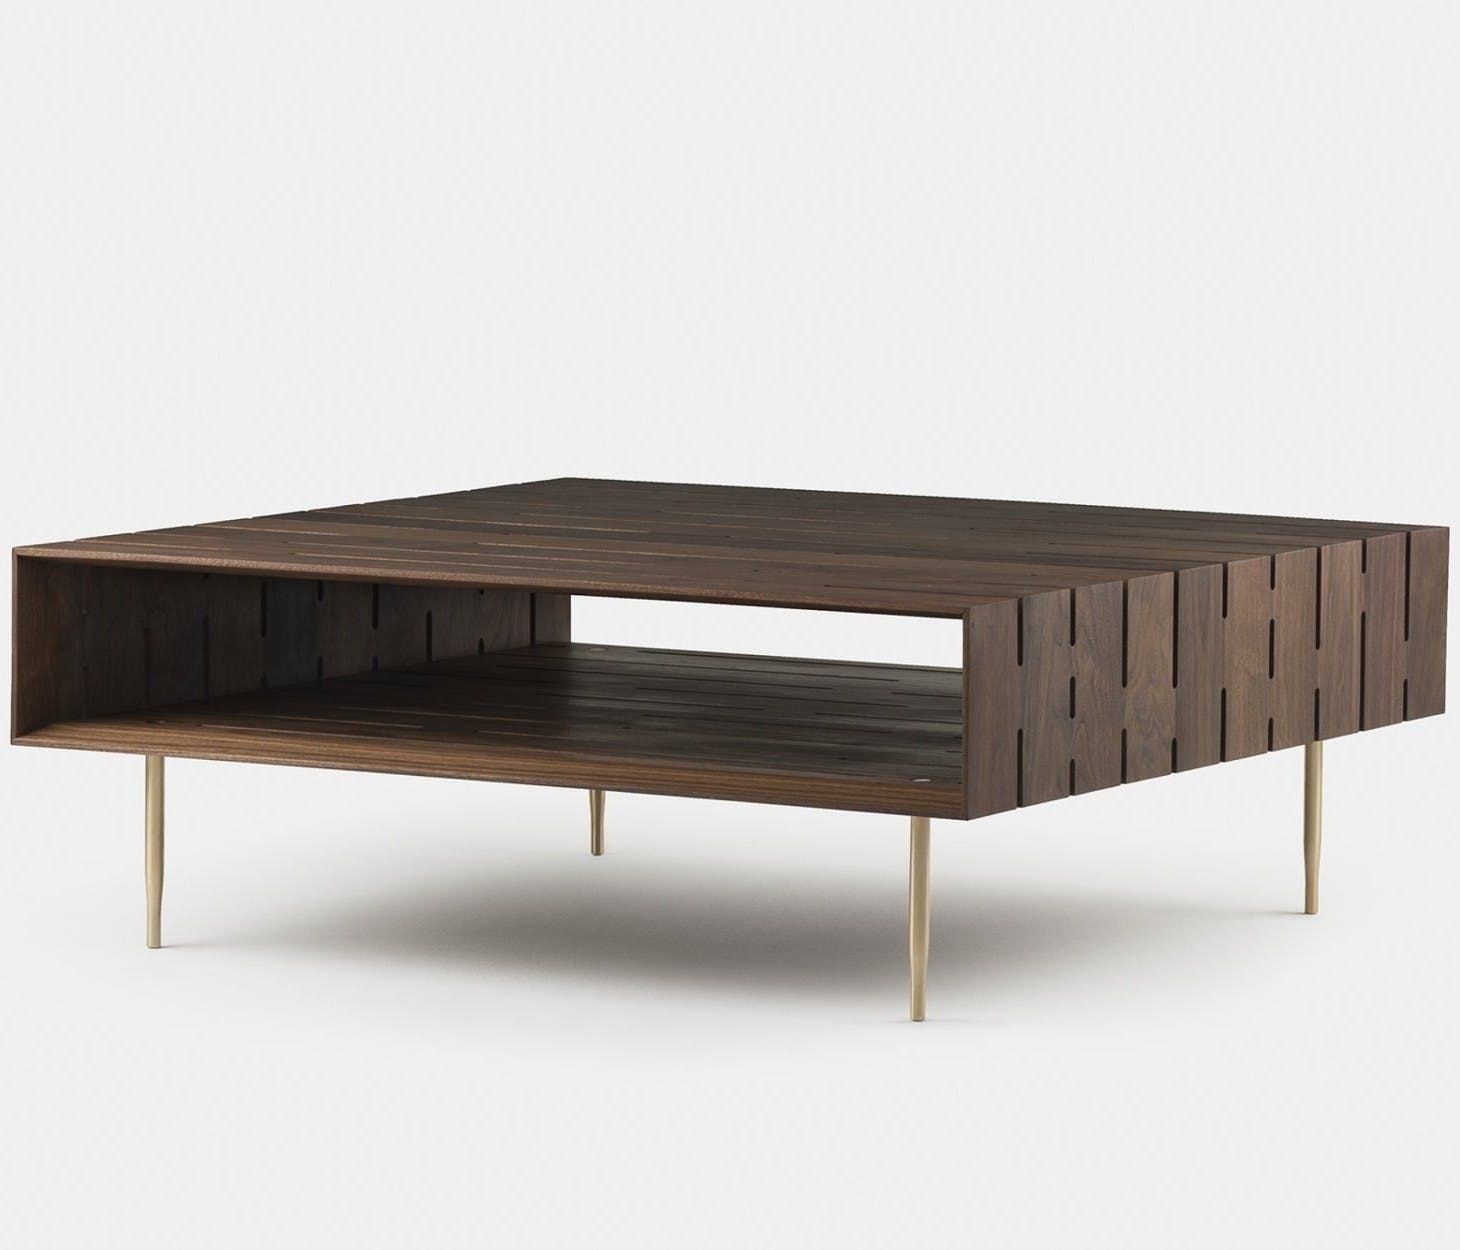 Horizon Large Coffee Table By Matthew Hilton In Walnutweb 1840X1250